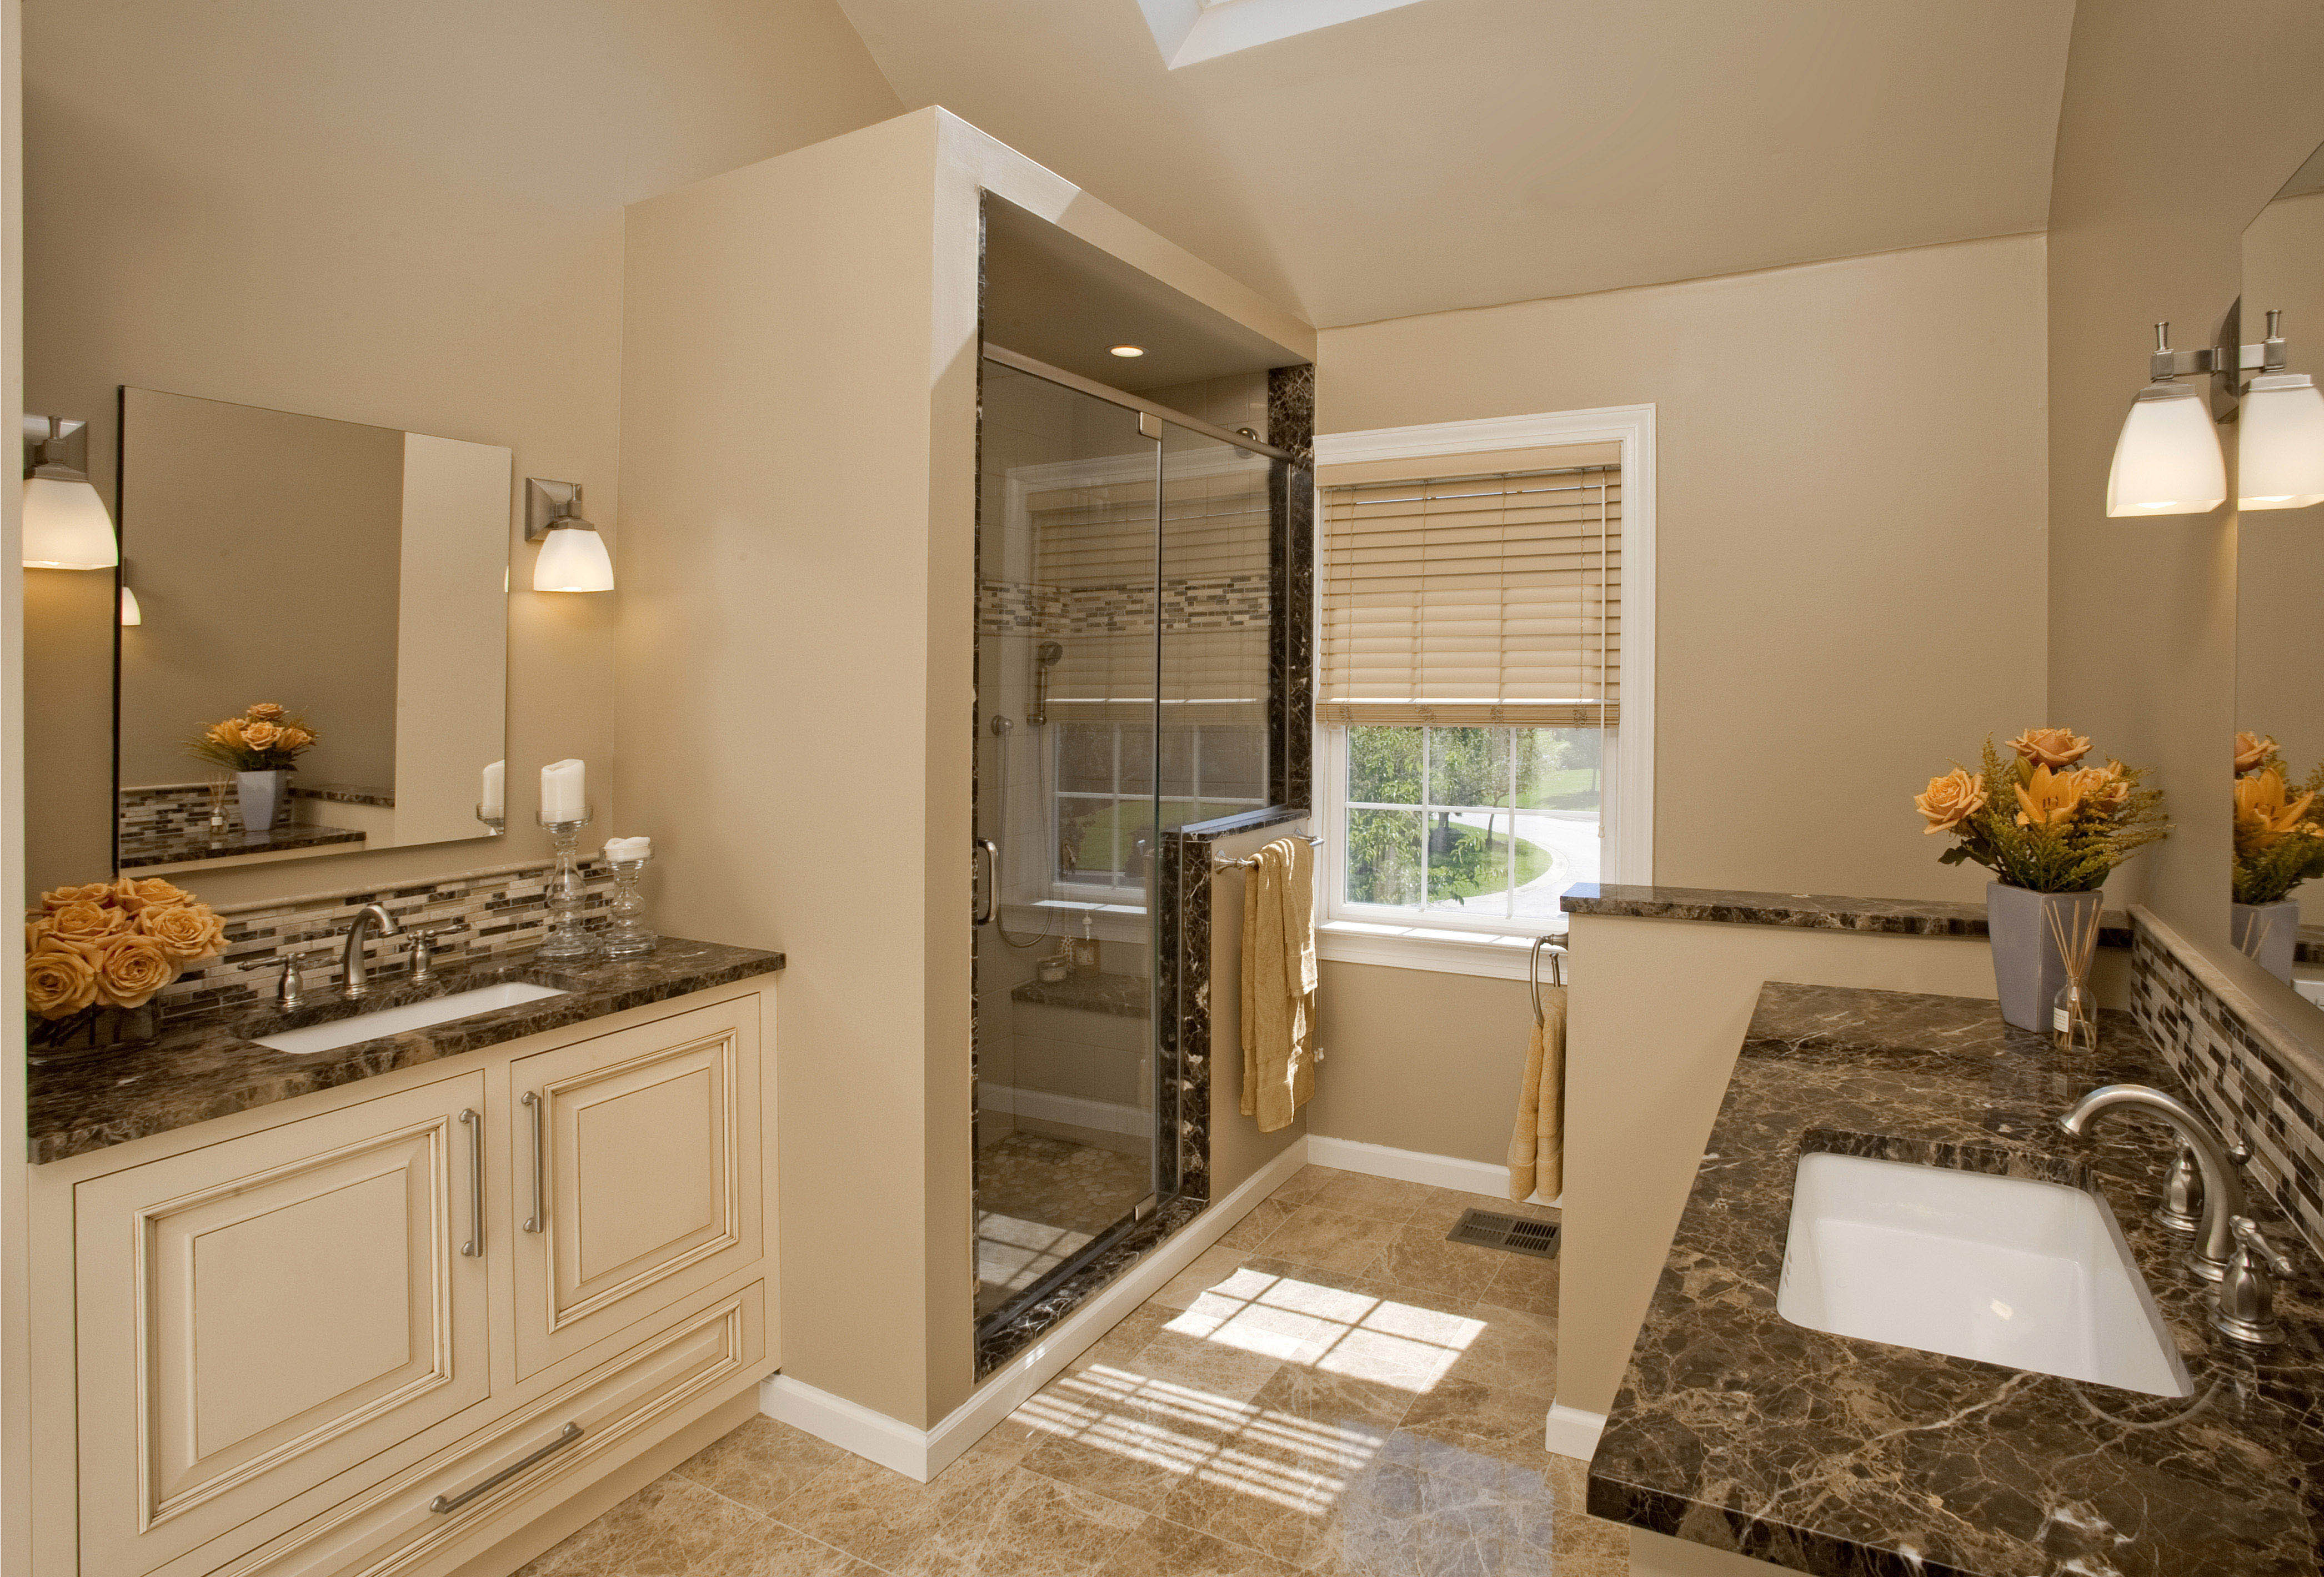 Closed Shower Room inside Traditional Bathroom with White Vanities and Small Side Table near Window